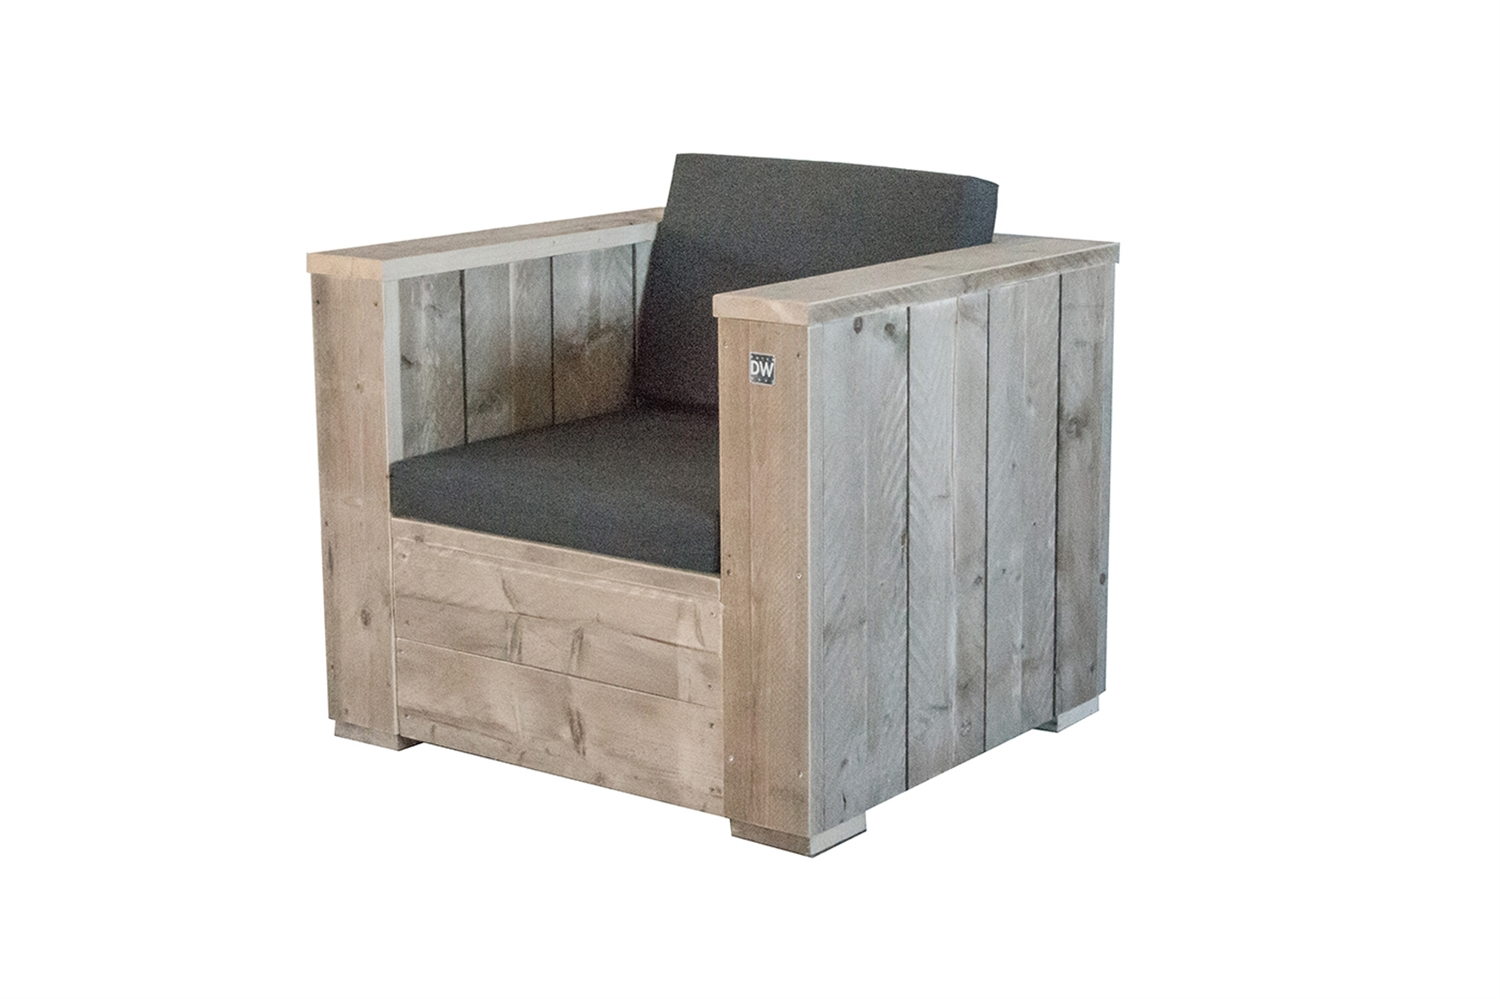 Holzsessel Garten Lounge Sessel Holz Interesting Lounge Sessel Terrasse Lounge